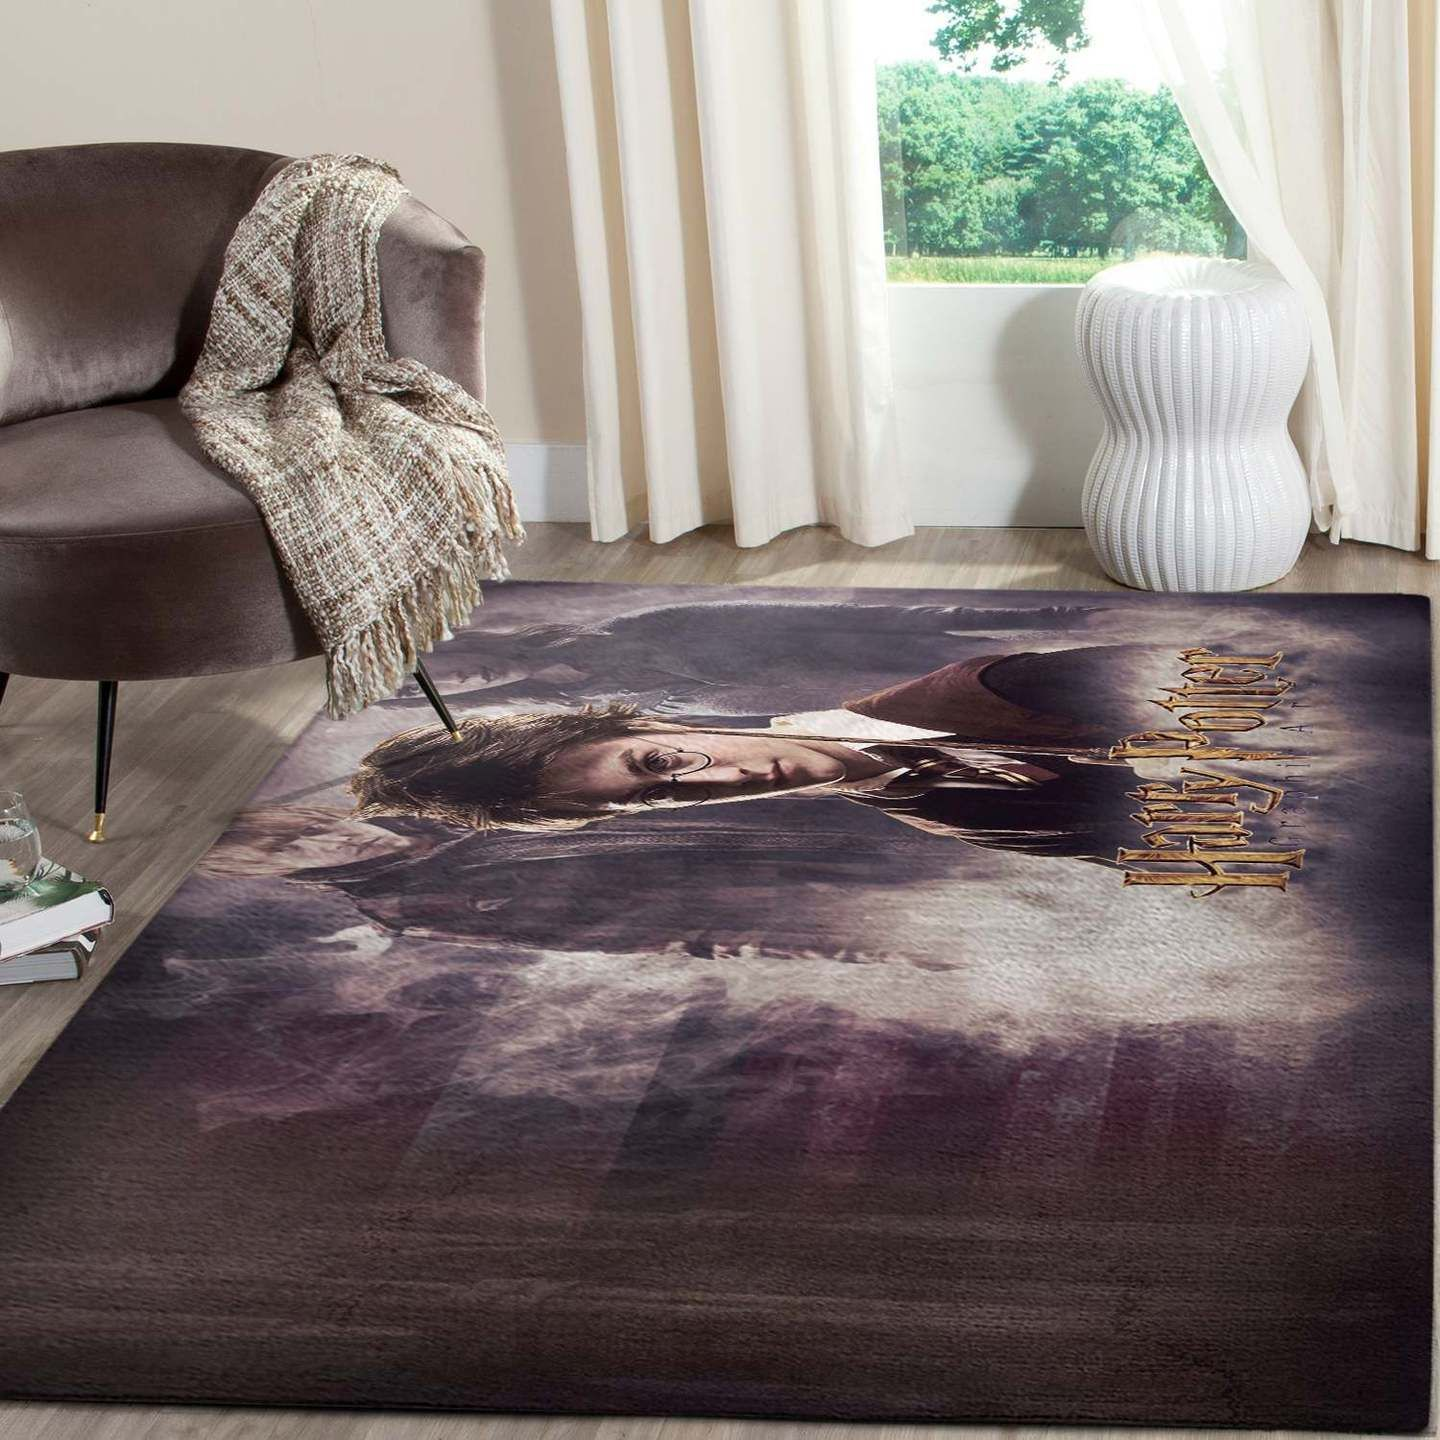 Witch Harry Potter Rug